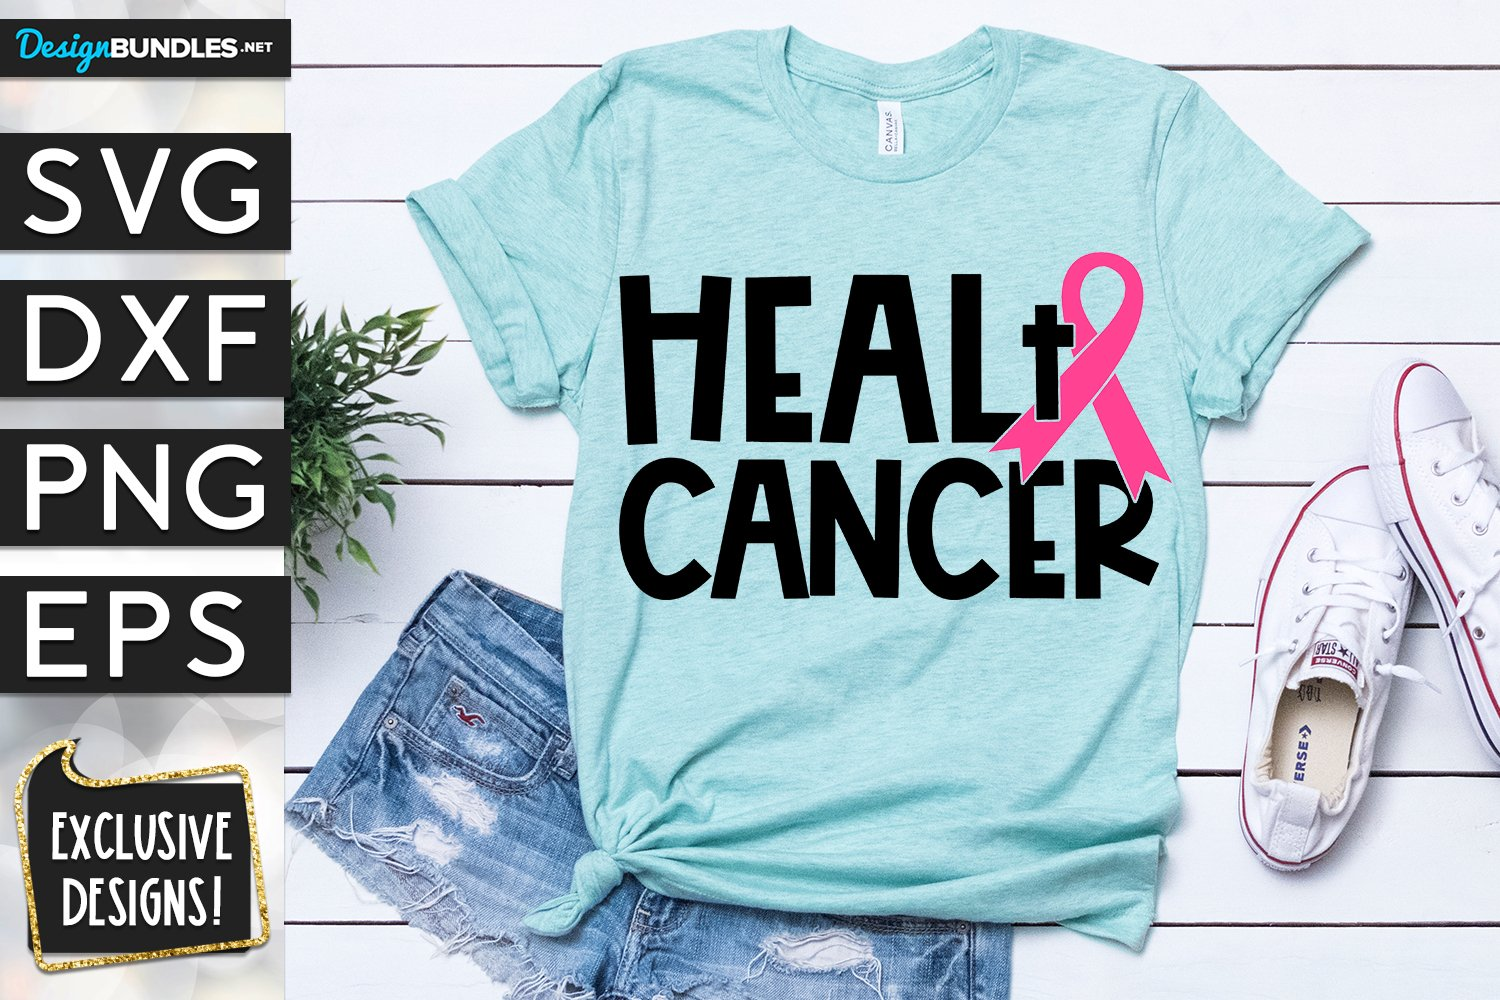 Heal Breast Cancer SVG DXF PNG EPS example image 1